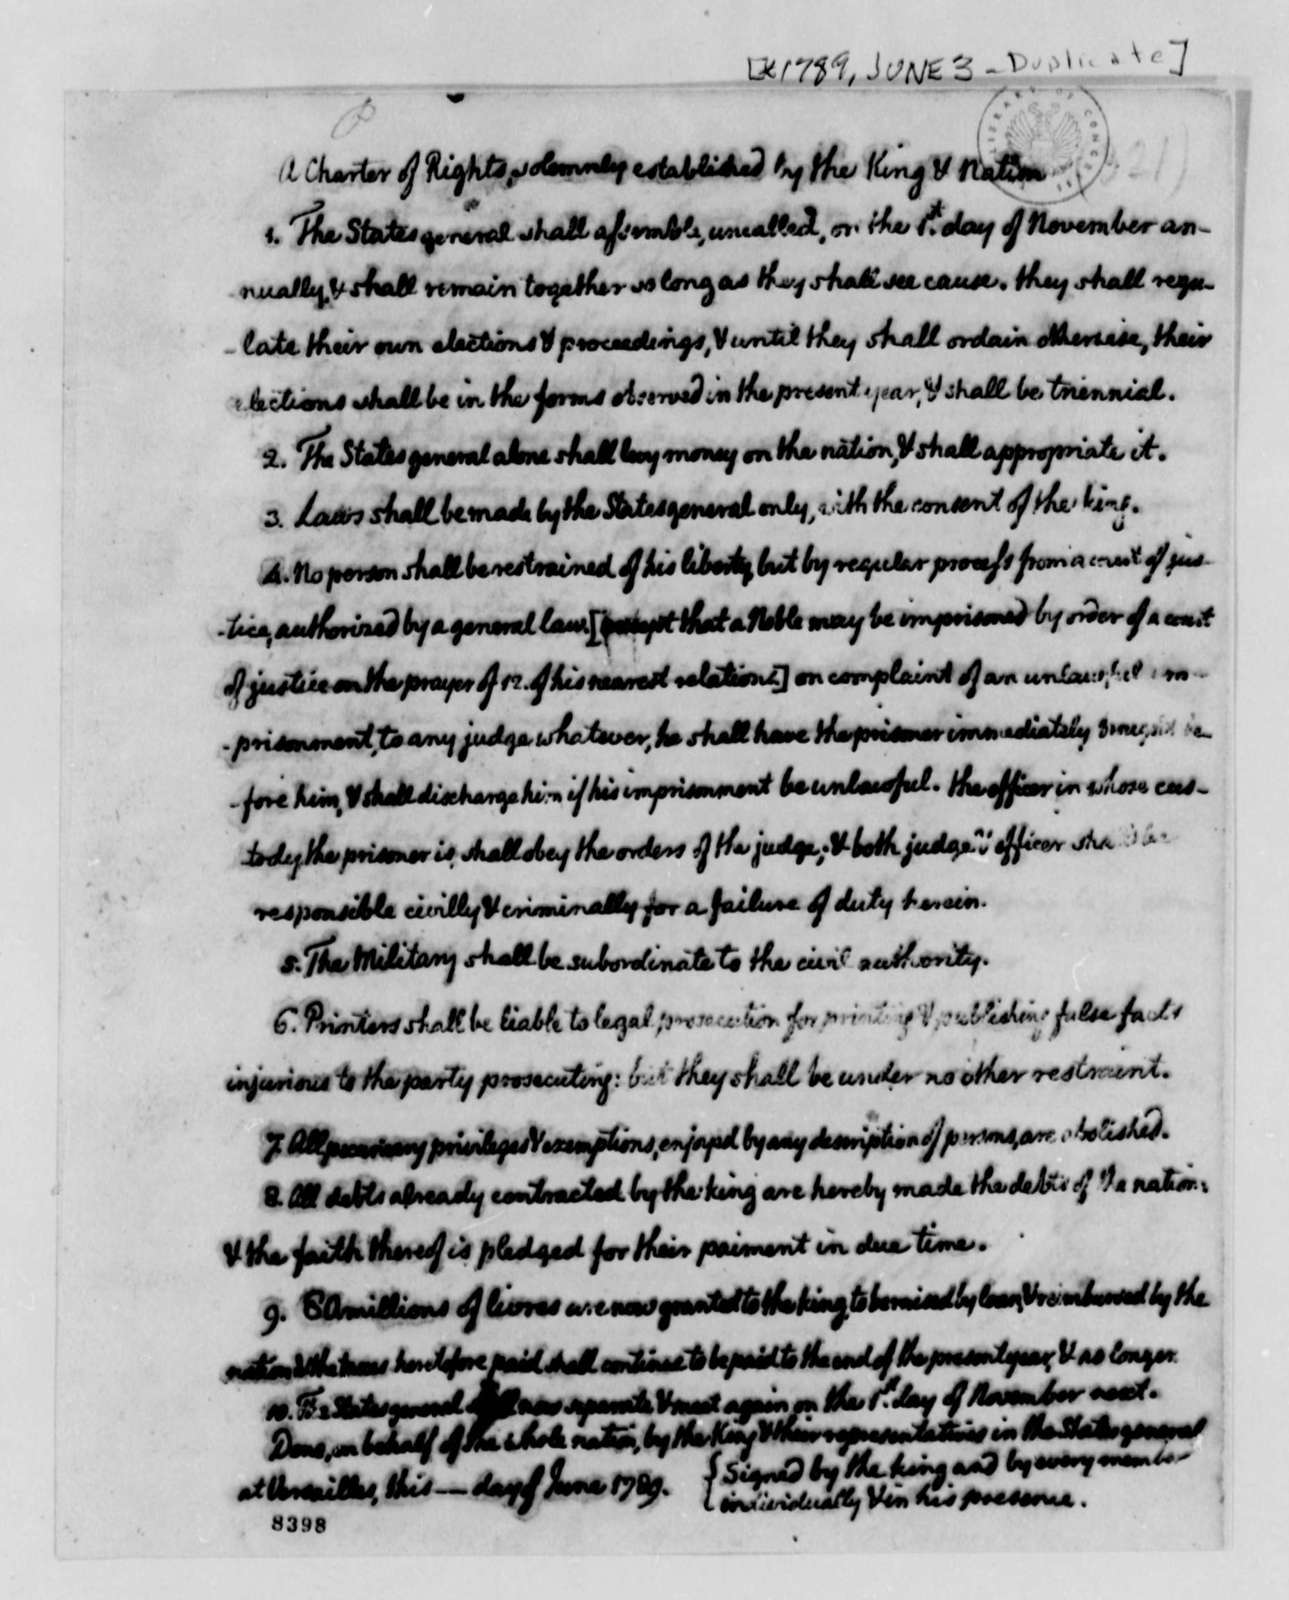 Thomas Jefferson to Rabaut de St. Etienne, June 3, 1789, with Jefferson's Draft Charter of Rights for France